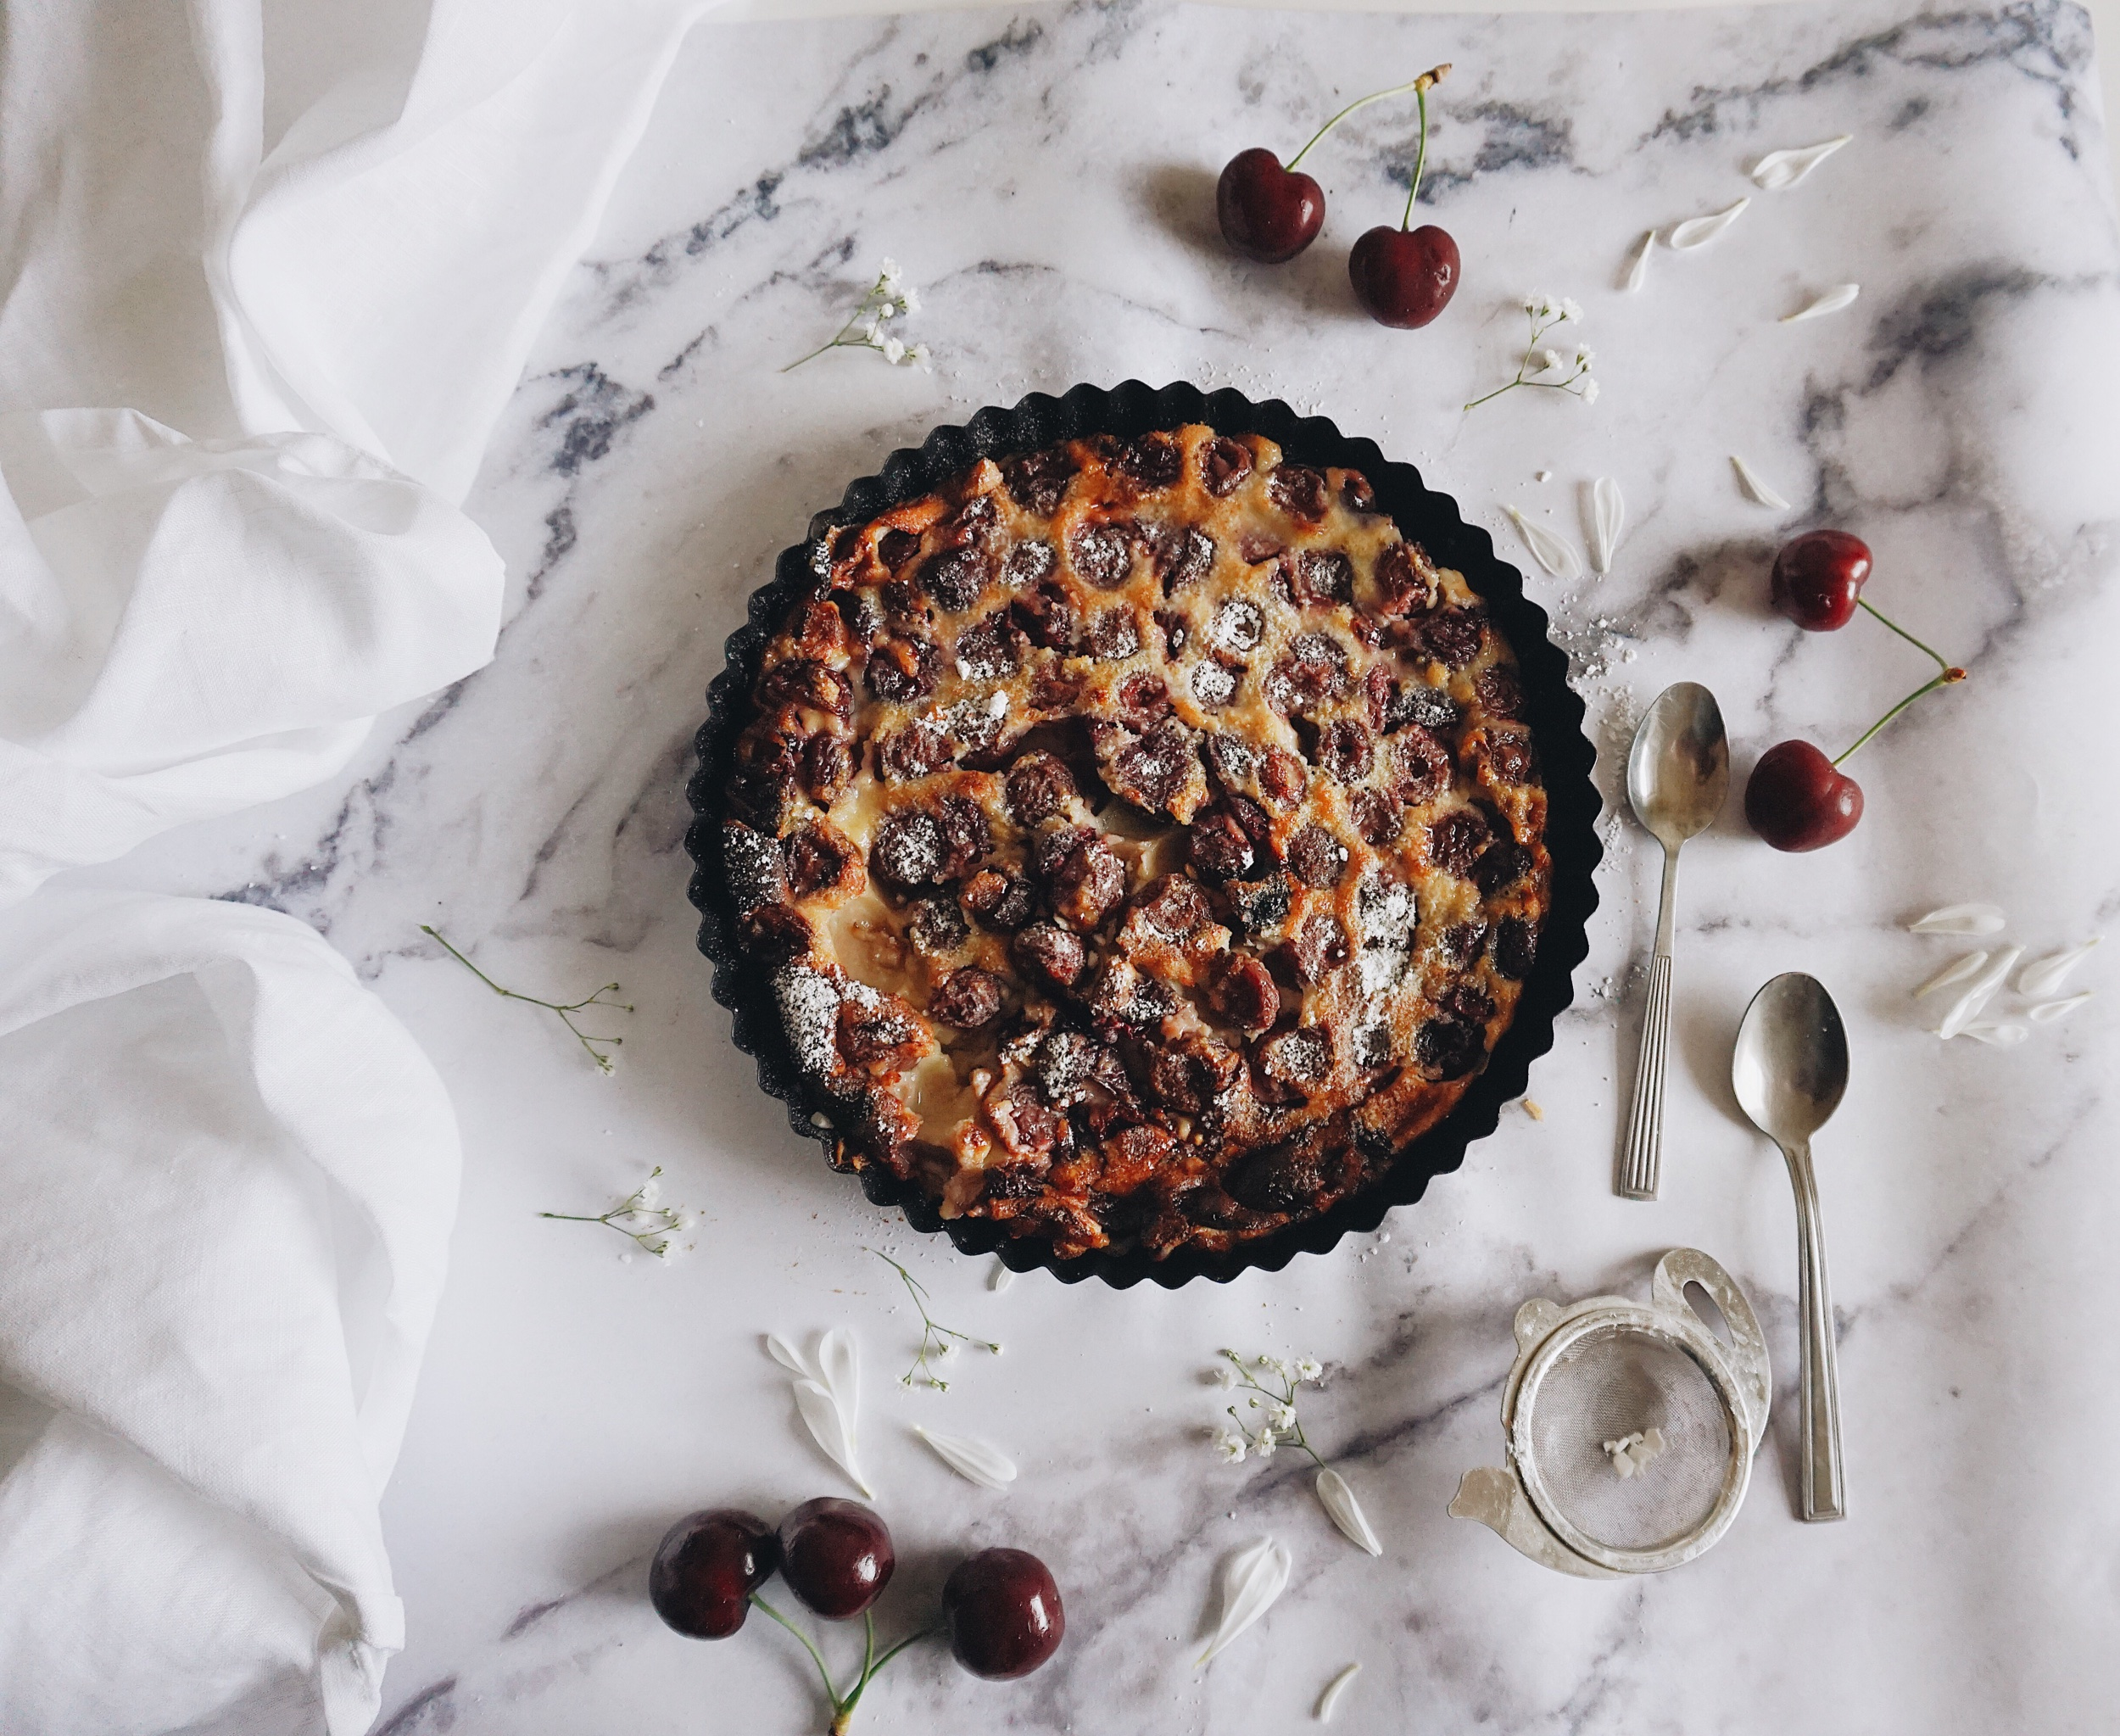 cherry almond clafoutis perfect summer dessert cracked custard top dusted with icing sugar surrounded by summer flowers and red cherries